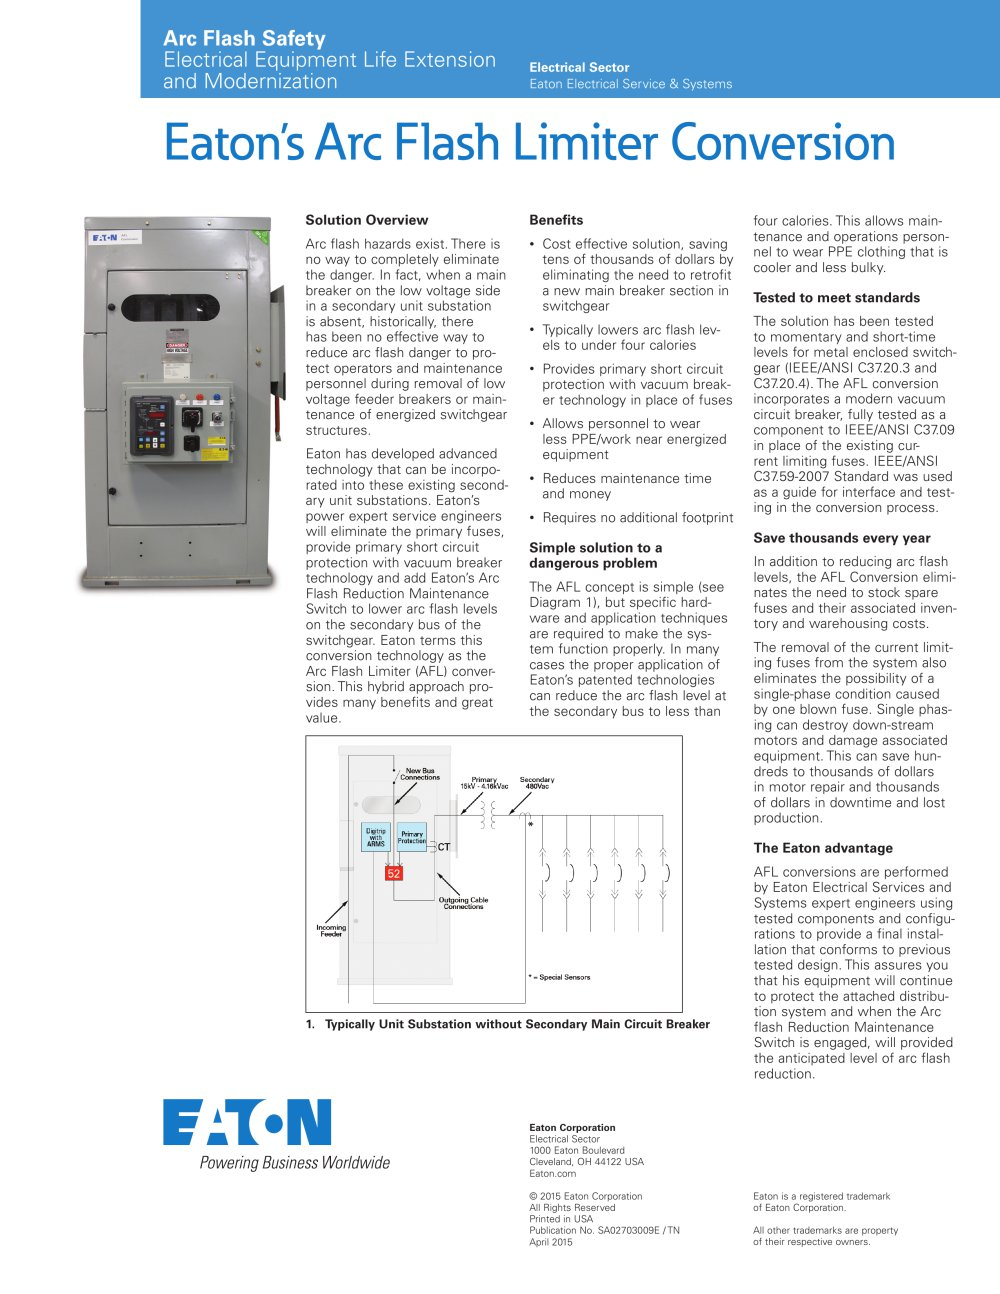 Eatons Arc Flash Limiter Conversion Cutler Hammer Pdf Catalogue Operator For A Circuit On Wiring Diagram Of Vacuum Breaker 1 Pages